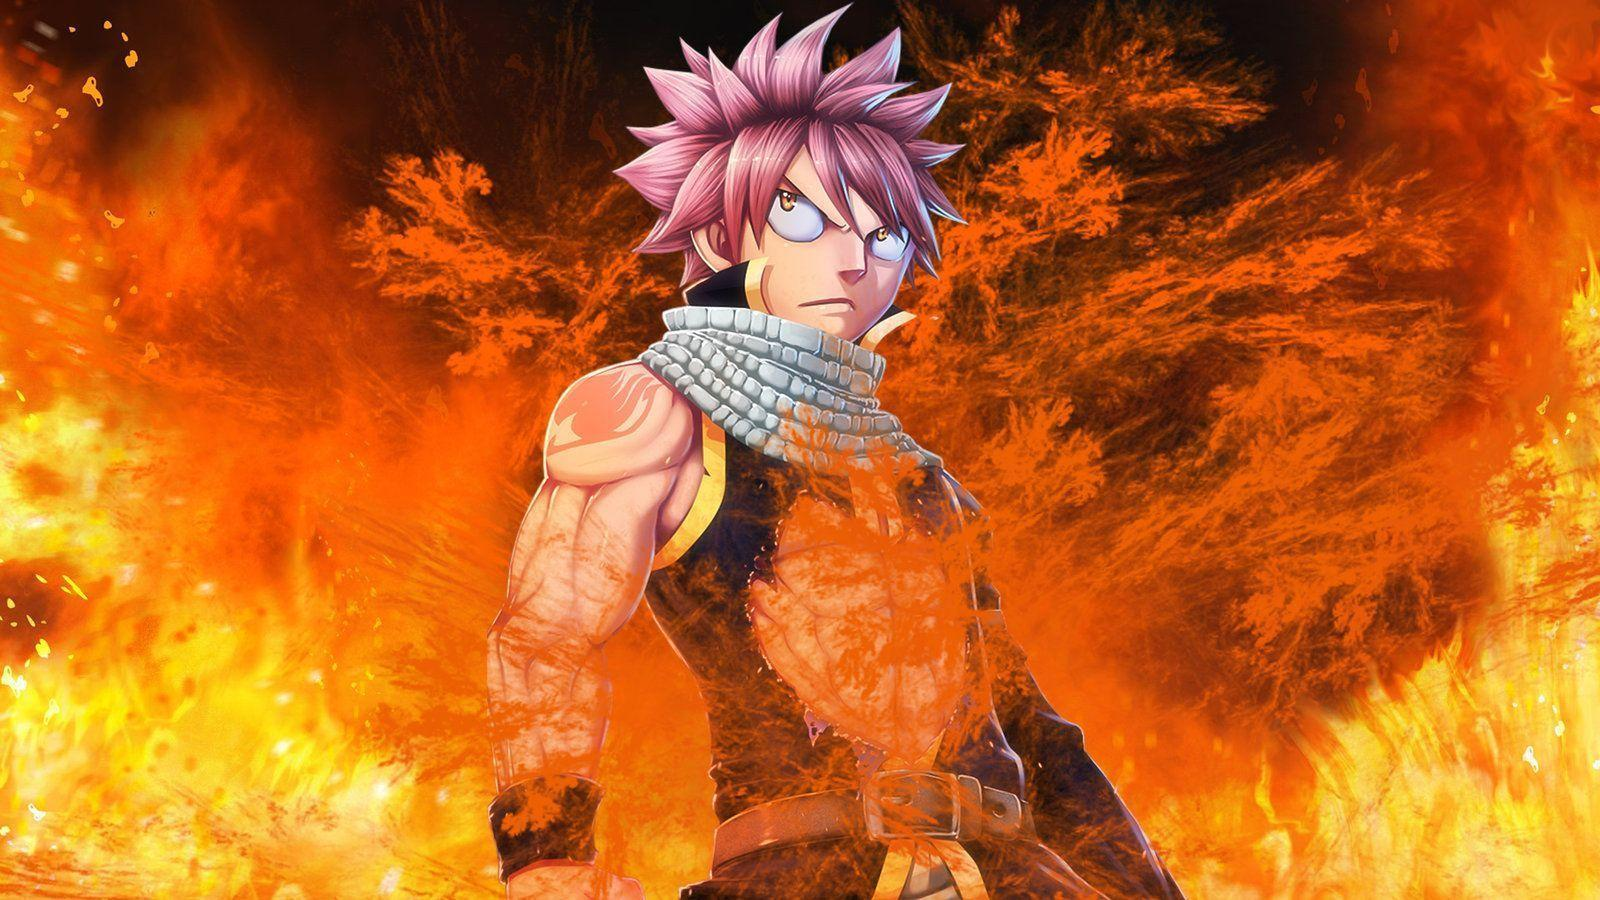 Fairy Tail Natsu Wallpapers - Wallpaper Cave